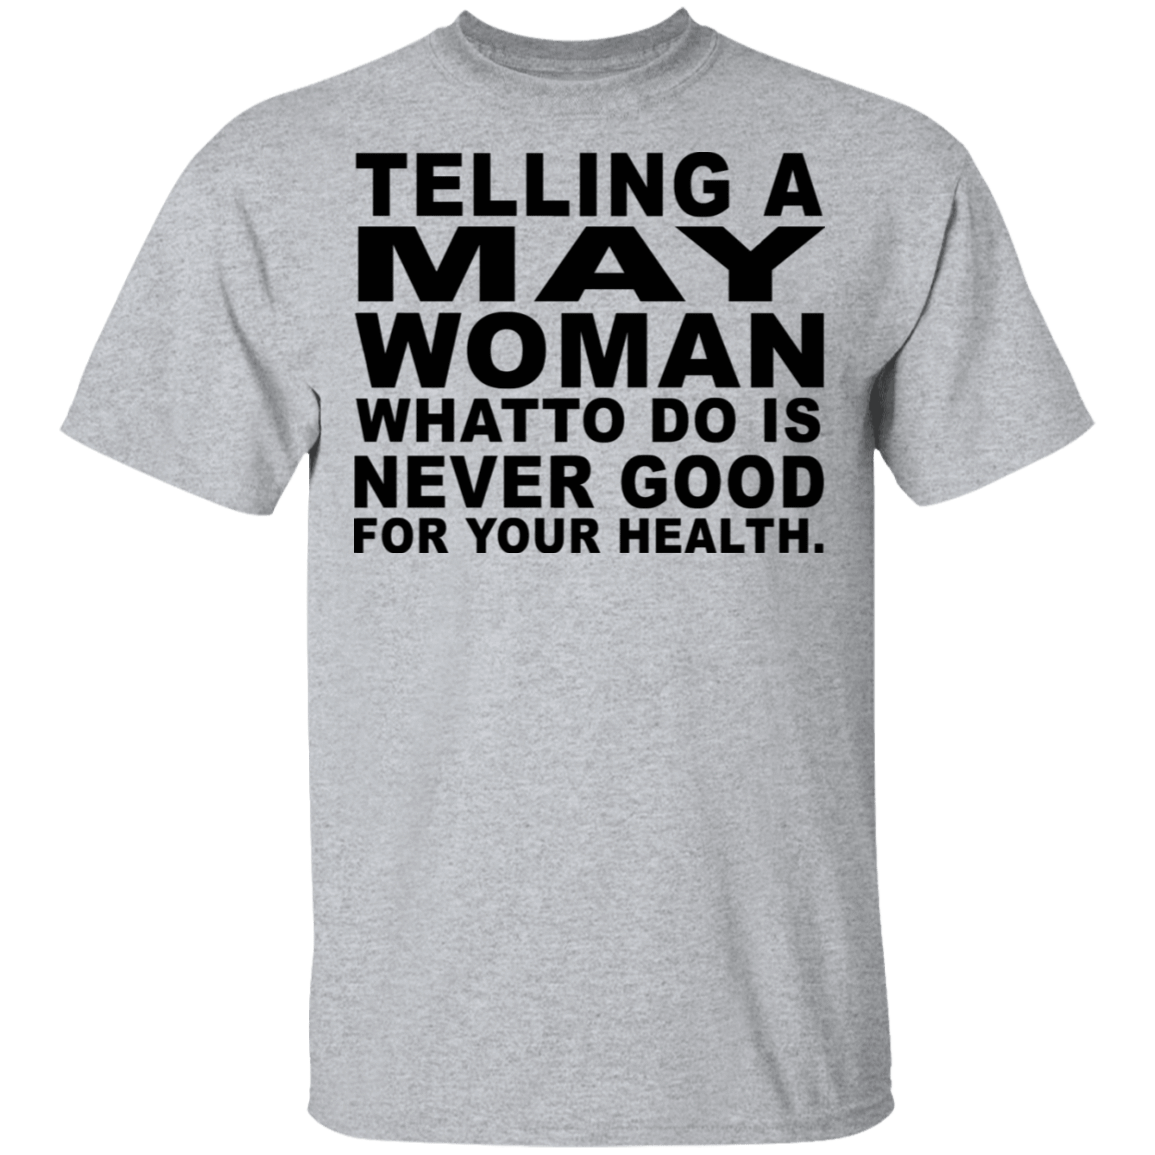 Telling A May Woman What To Do Is Never Good T-Shirts, Hoodies, Tank 22-115-79463219-254 - Tee Ript